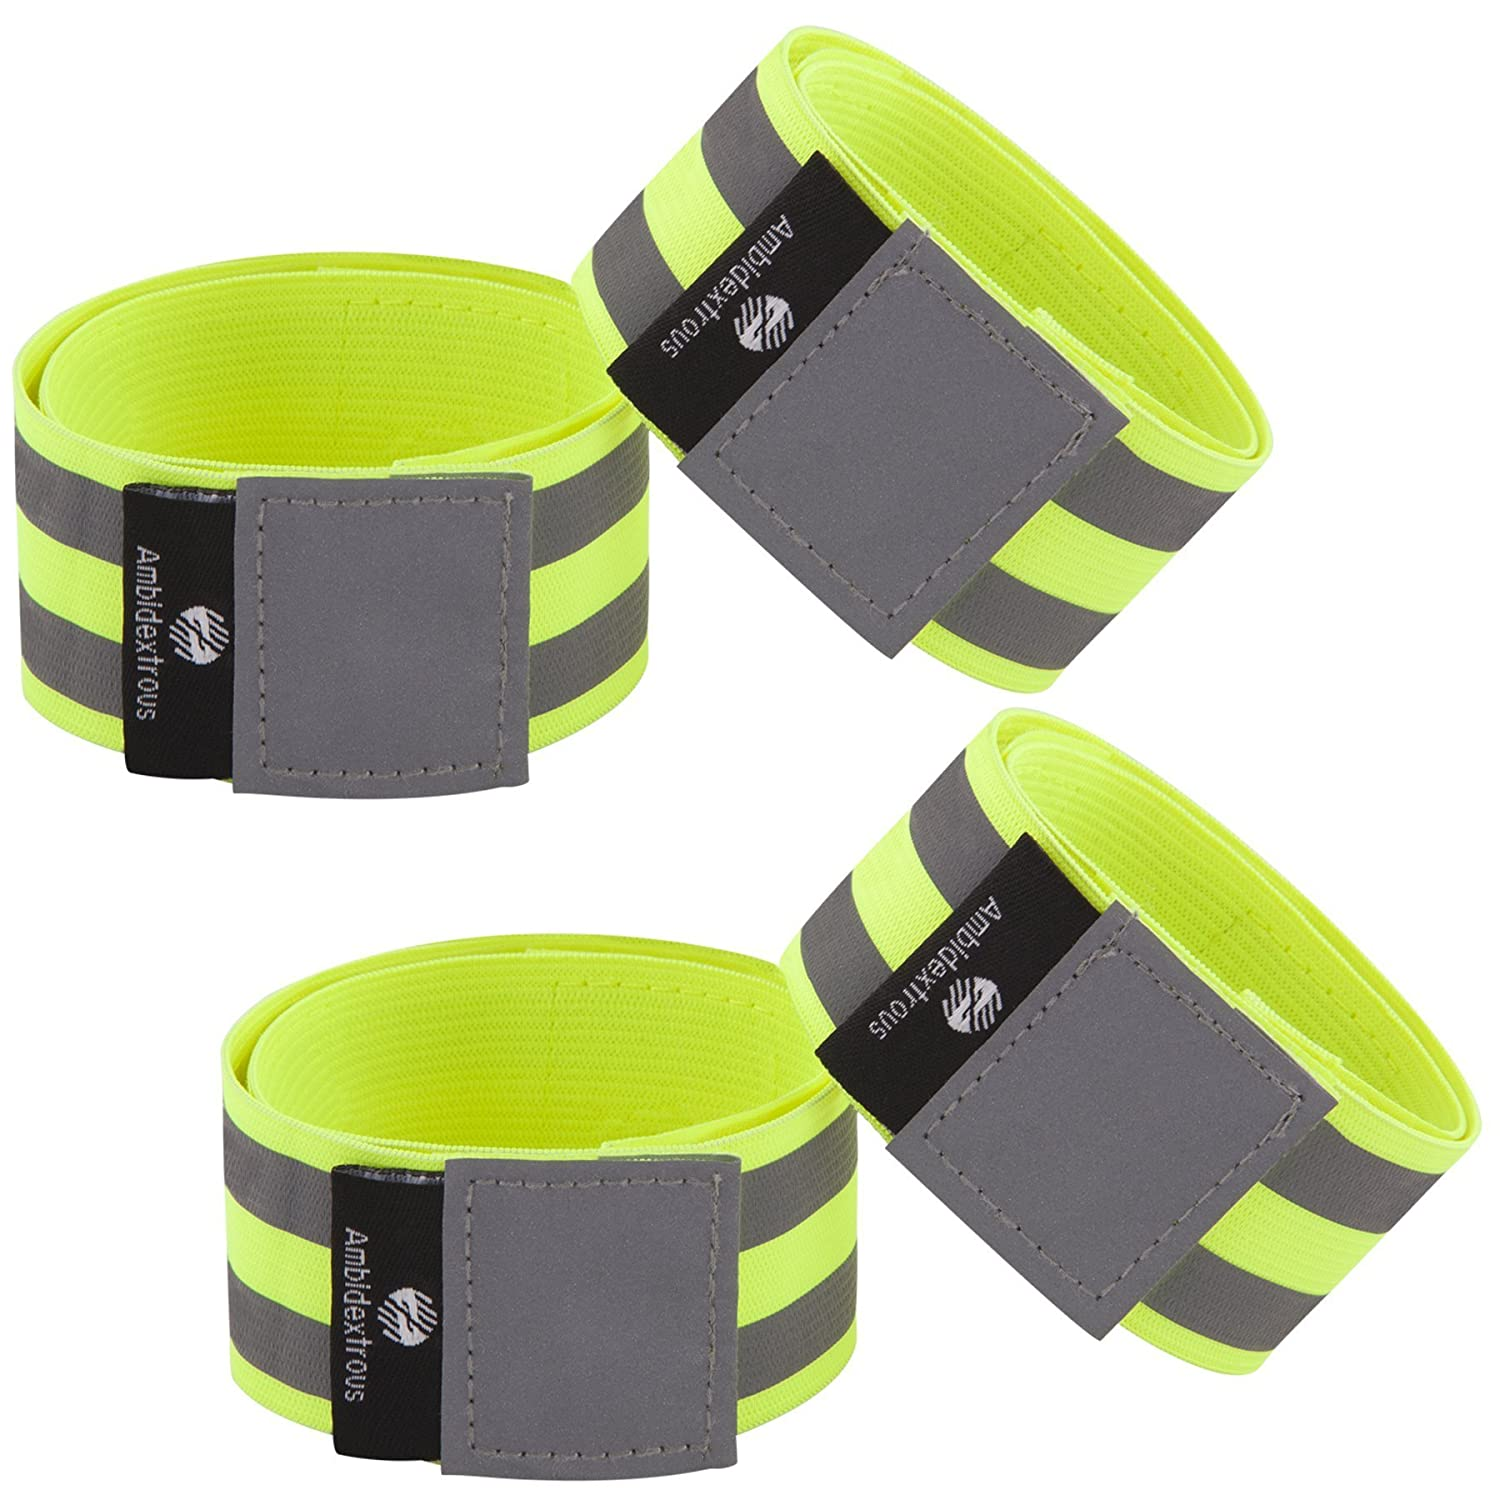 Set of 4 Reflective Ankle Bands Walking Reflectors for Runners Armbands Cycling Reflector Tape Providing High Visibility Safety Apparel Utilis Products Wristbands Reflective Running Gear for Men and Women